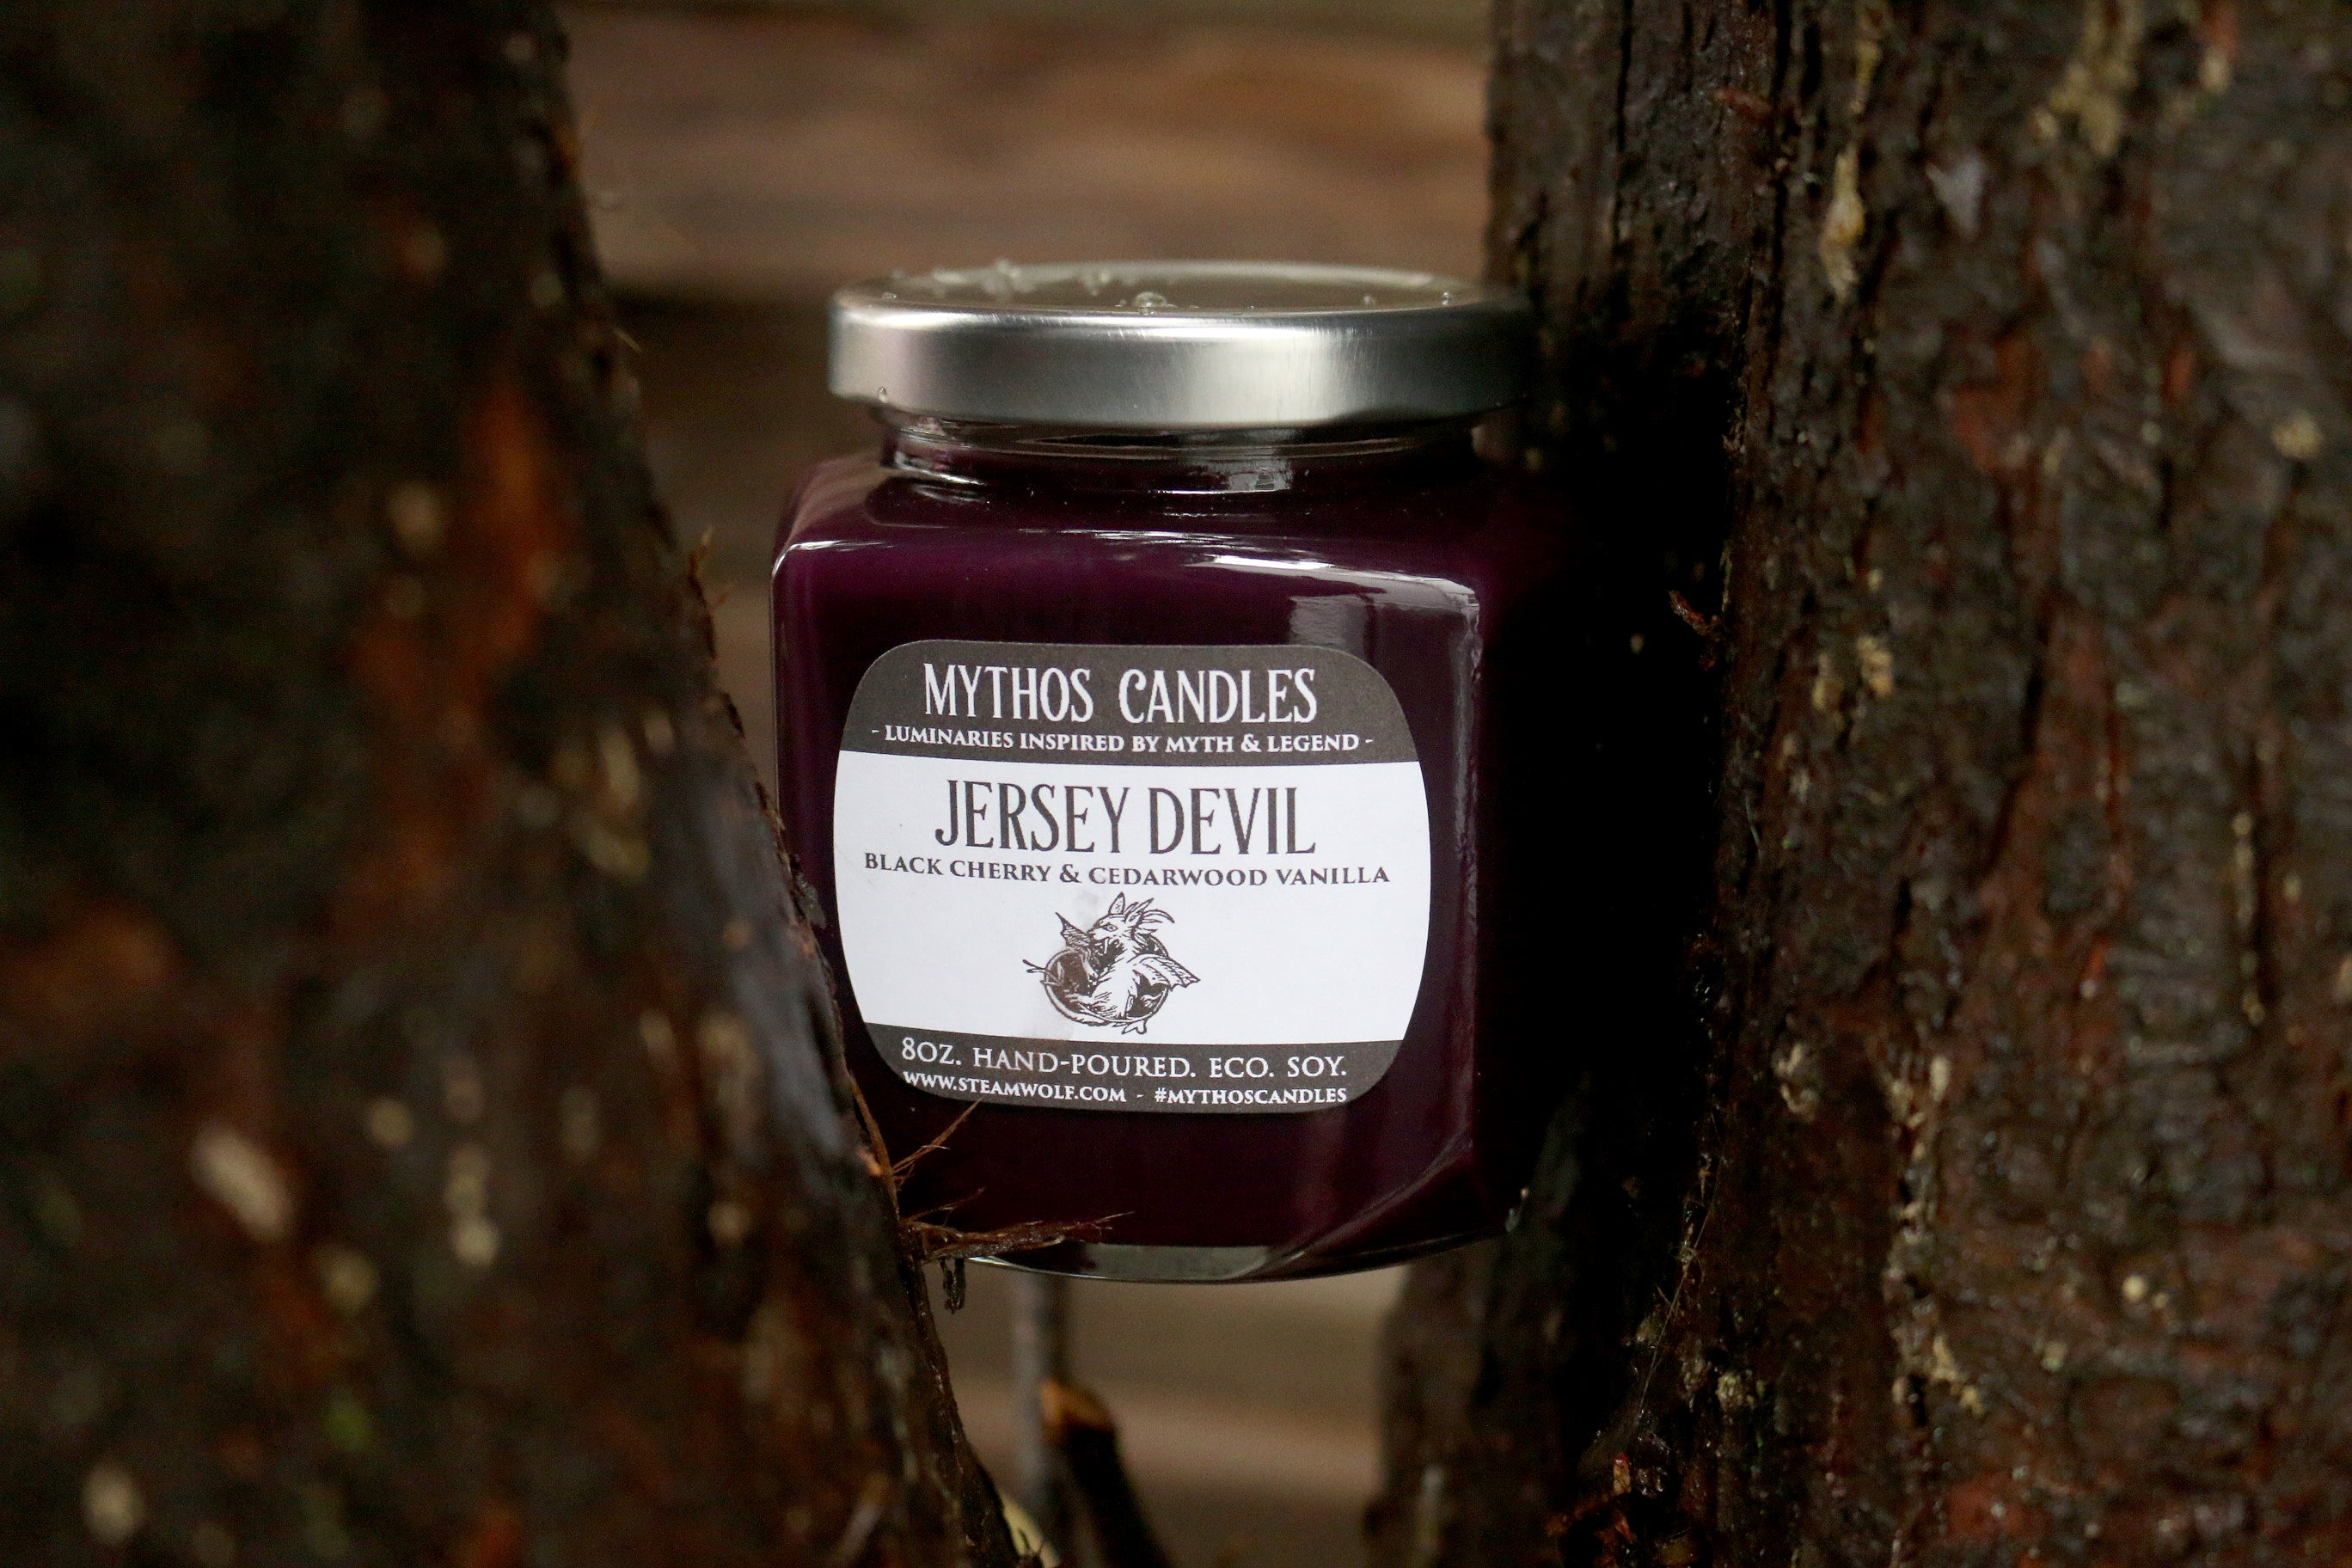 Limited Edition Mythos Candles - Jersey Devil | 8oz. Strong Scented Soy Candle | Black Cherry & Cedarwood Vanilla